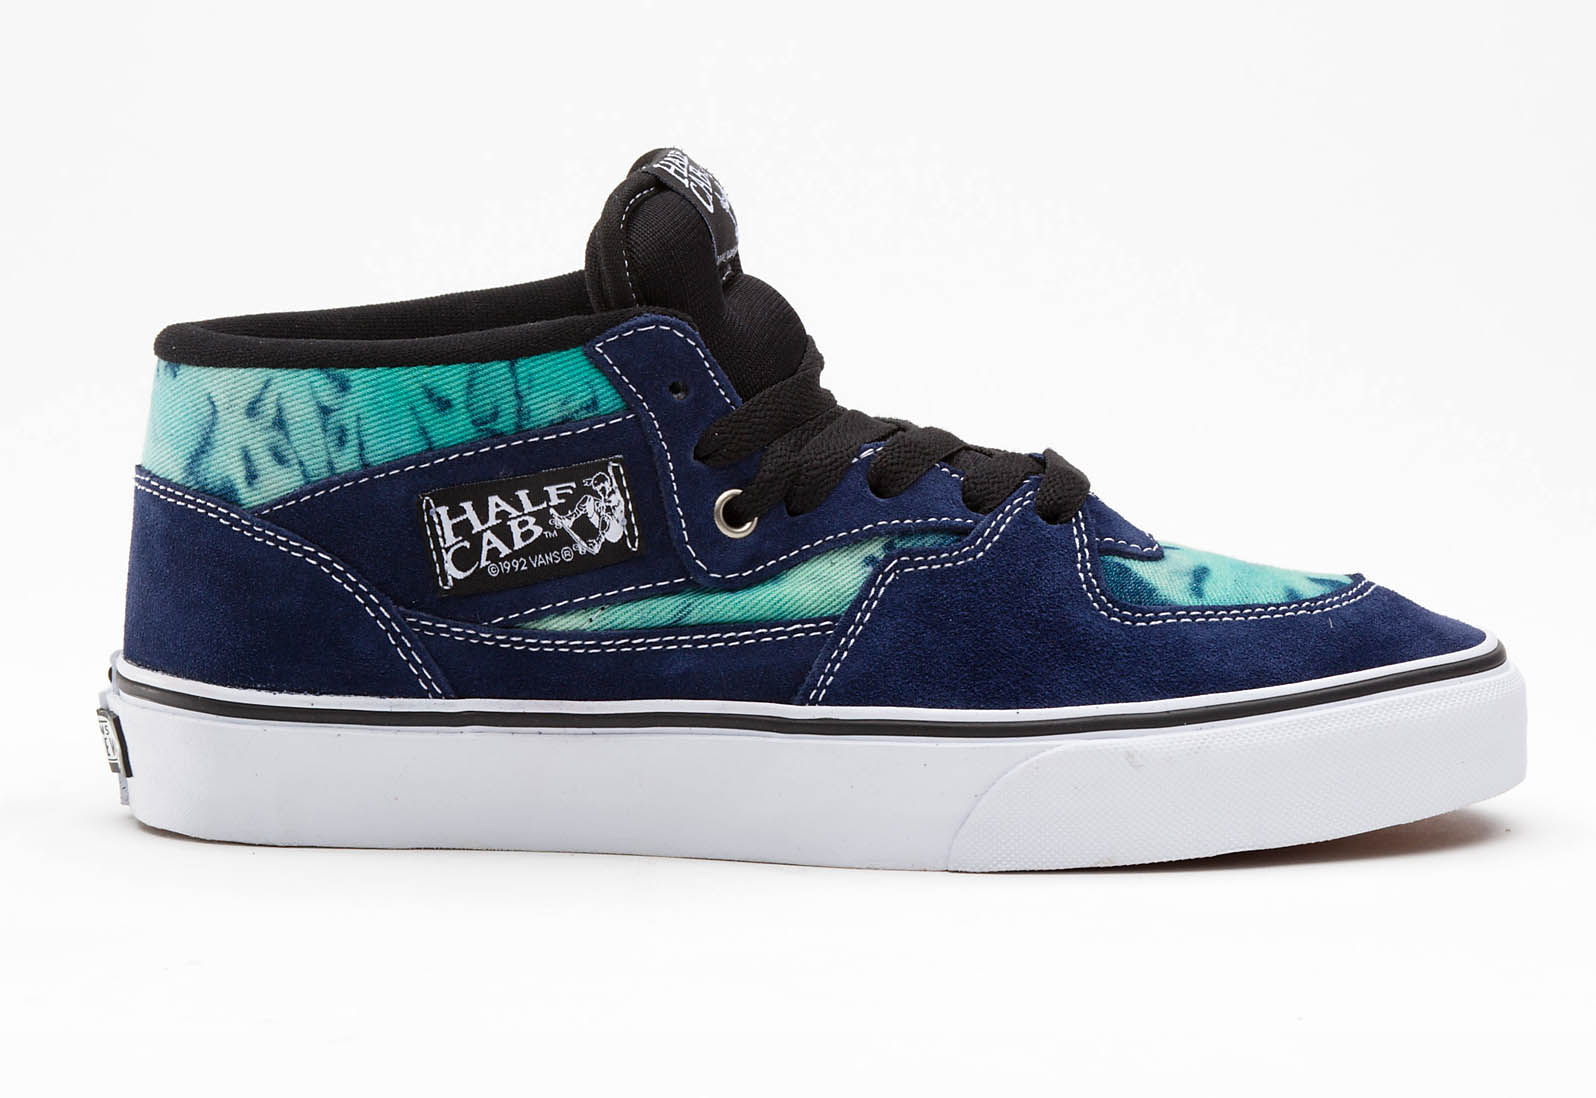 bf1640e2711d77 Two tie-dyed looks hit the classic Vans Half Cab in blue and black  colorways.